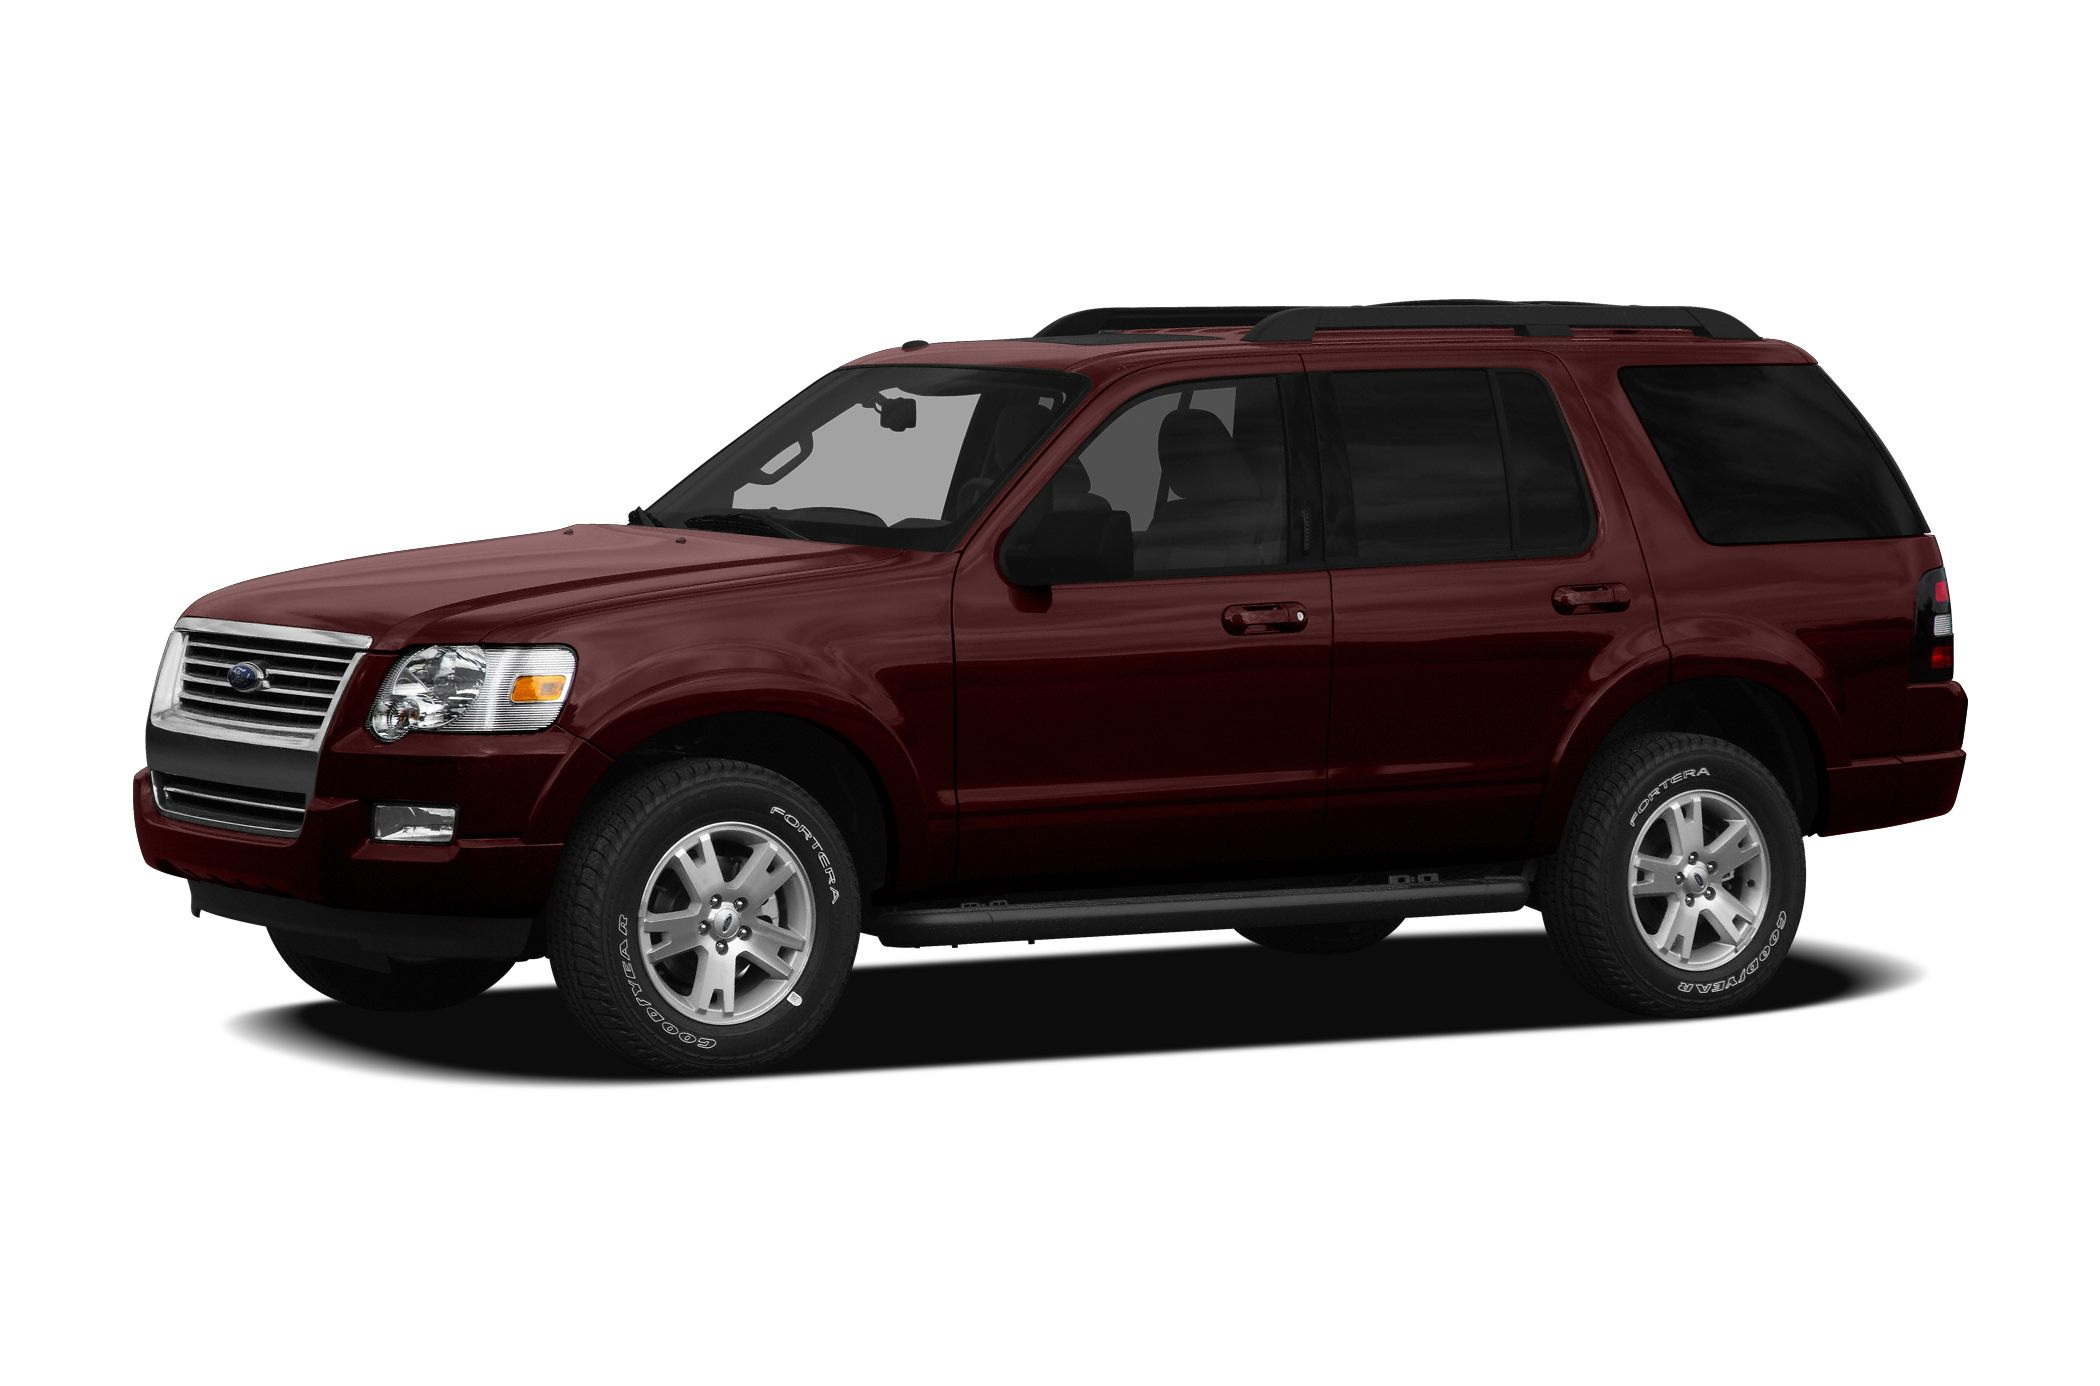 2009 Ford Explorer XLT SUV for sale in Saint Paul for $11,936 with 115,278 miles